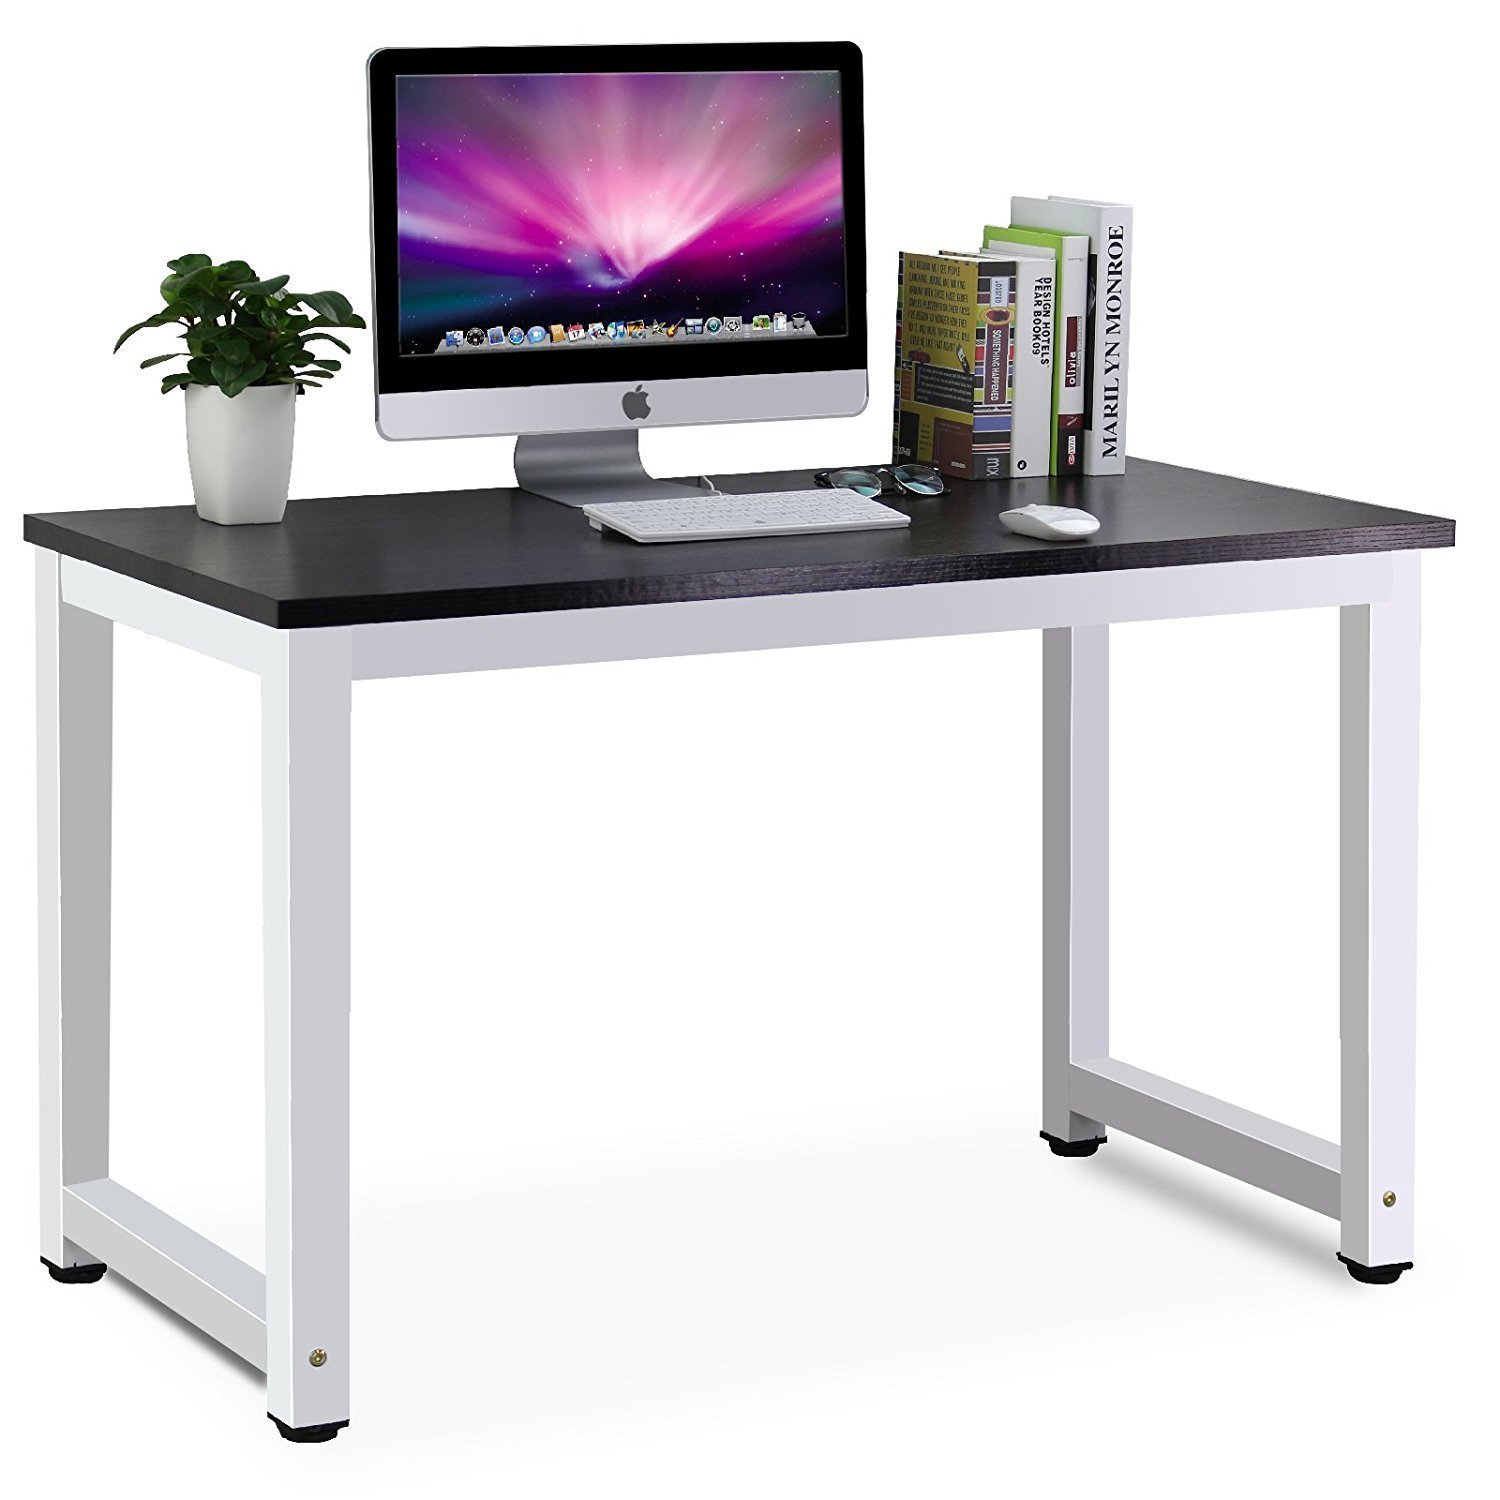 Amazon com   Tribesigns Modern Simple Style Computer Desk PC Laptop Study  Table Workstation for Home Office  Black   Office Products. Amazon com   Tribesigns Modern Simple Style Computer Desk PC